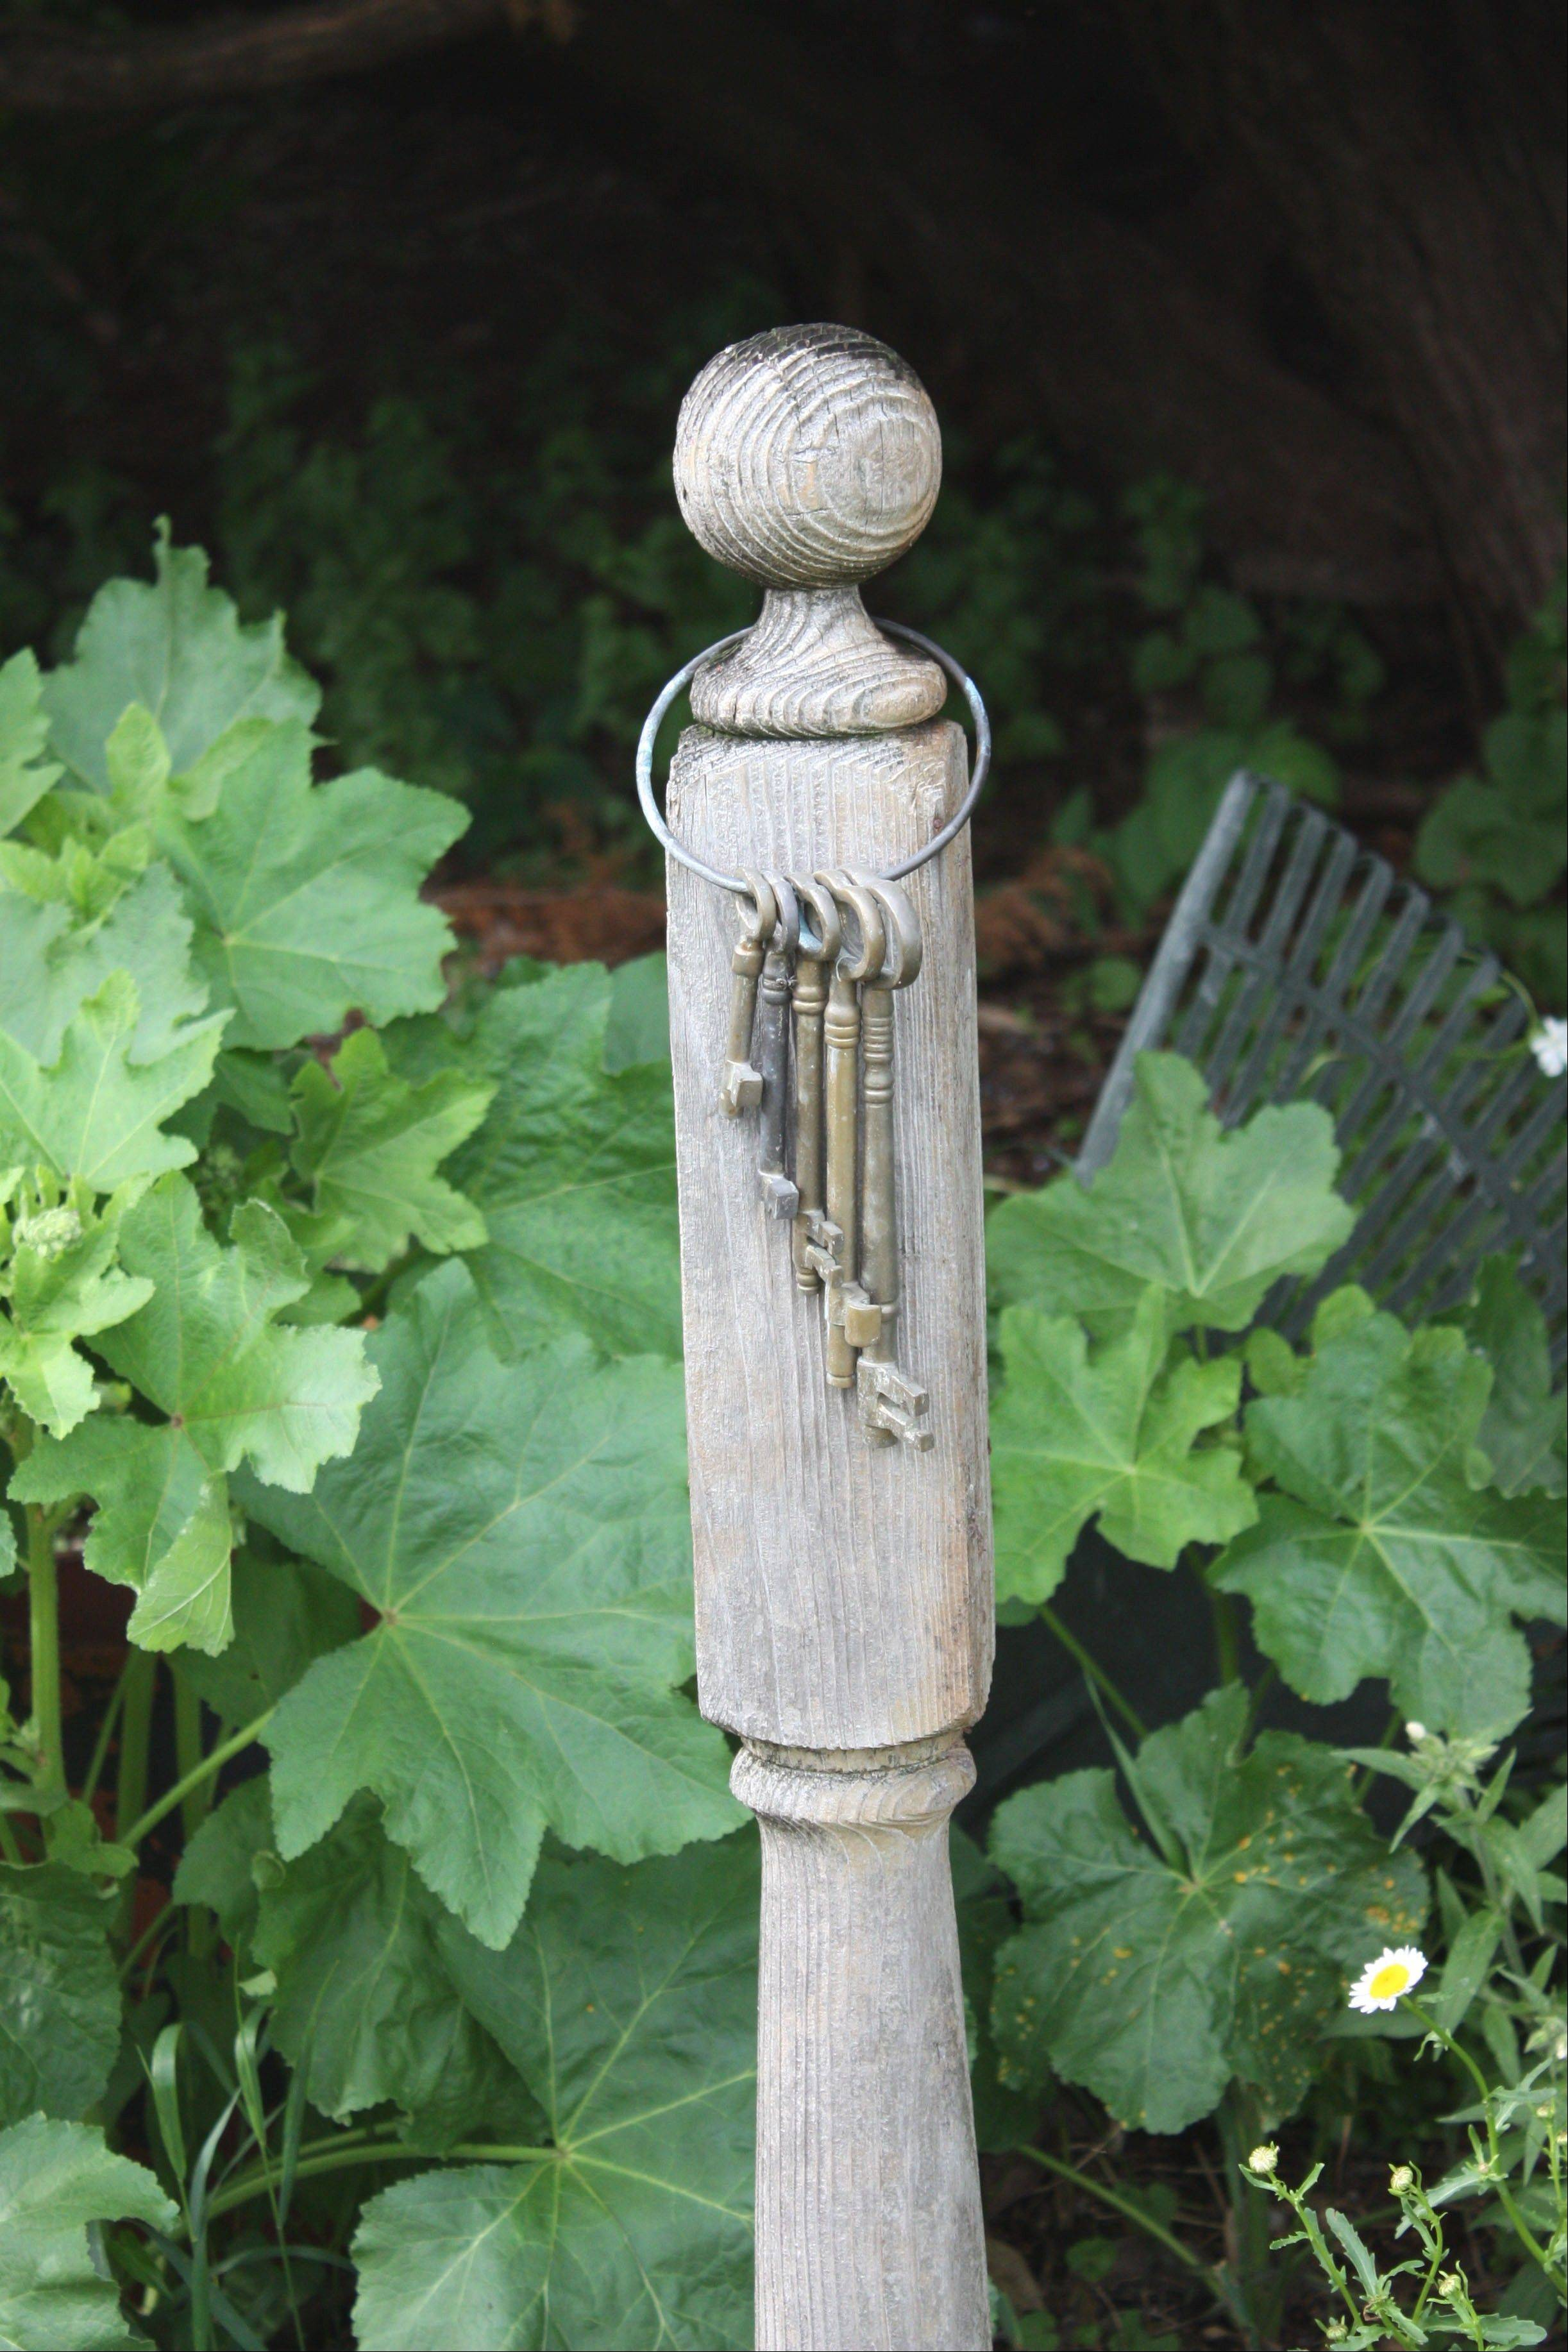 With a theme of reuse, recycle and re-purpose, a collection of old keys hitched to a single fence post always unlocks smiles of recognition to visitors to the Buehler garden.